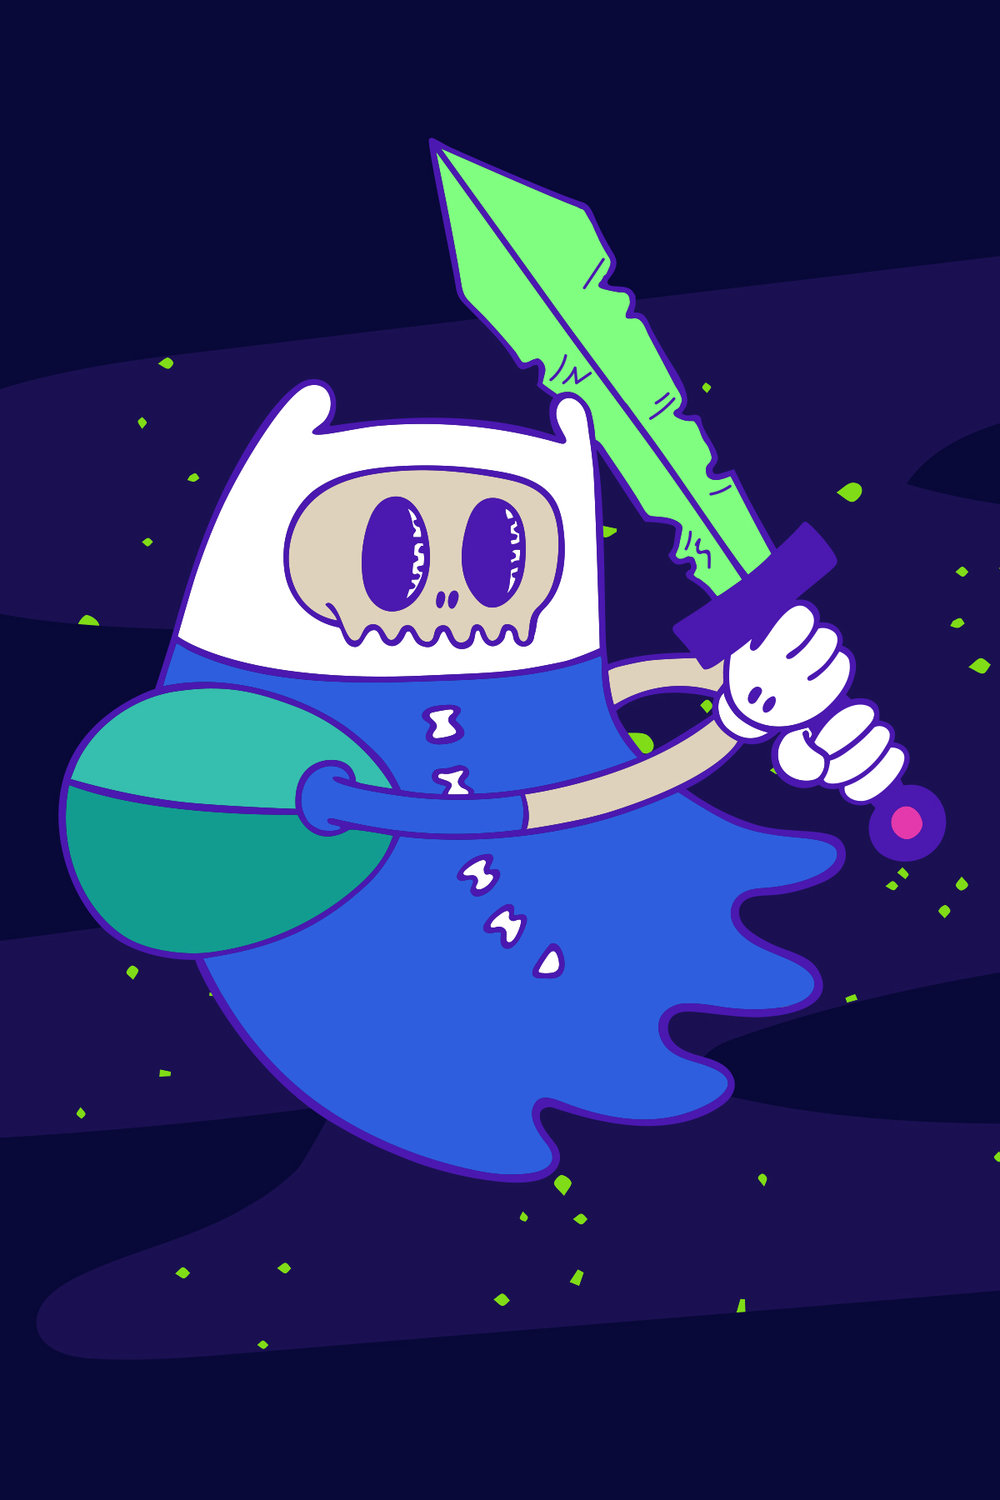 haunts-finn-adventure-time-illustration.jpg